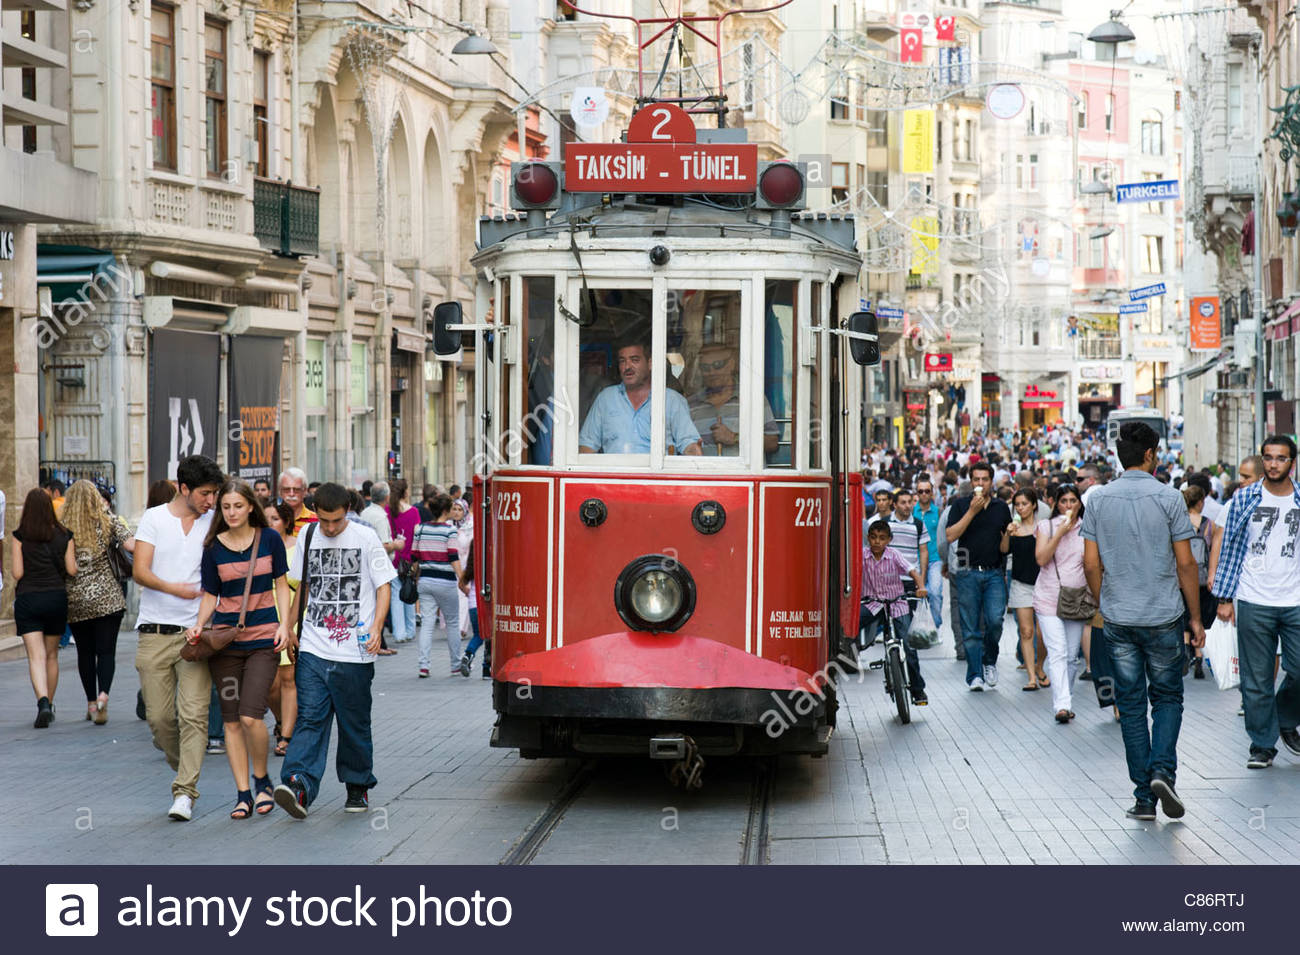 Vieux tramway sur l'avenue Istiklal Cadessi, Istanbul, Turquie Photo Stock